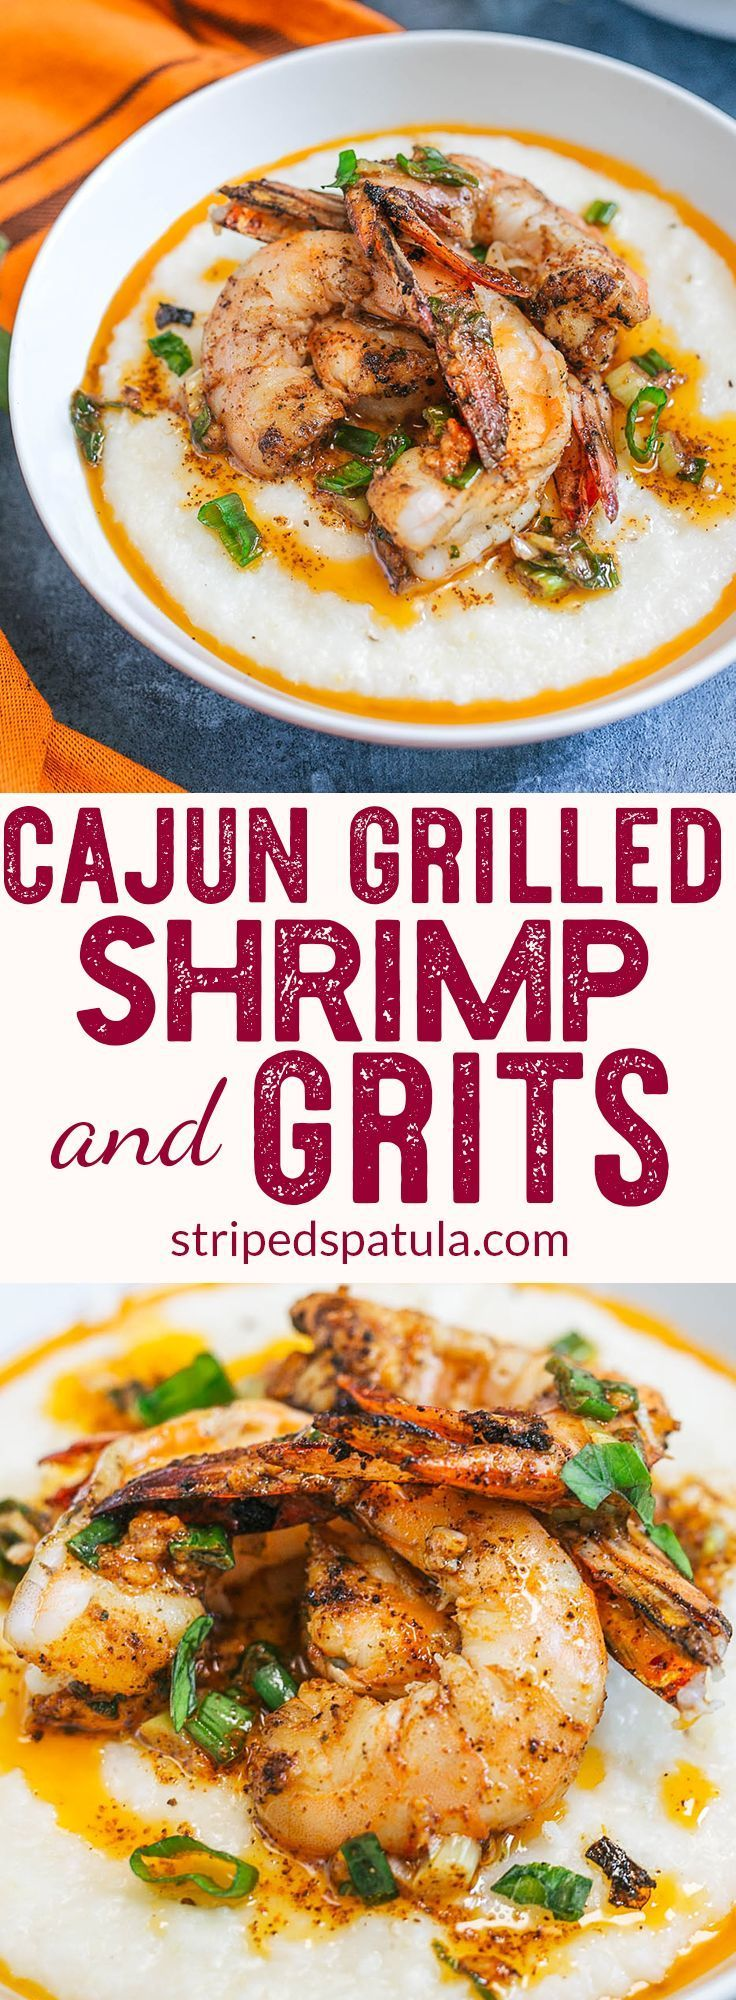 Grilled Cajun Shrimp and Grits | Striped Spatula